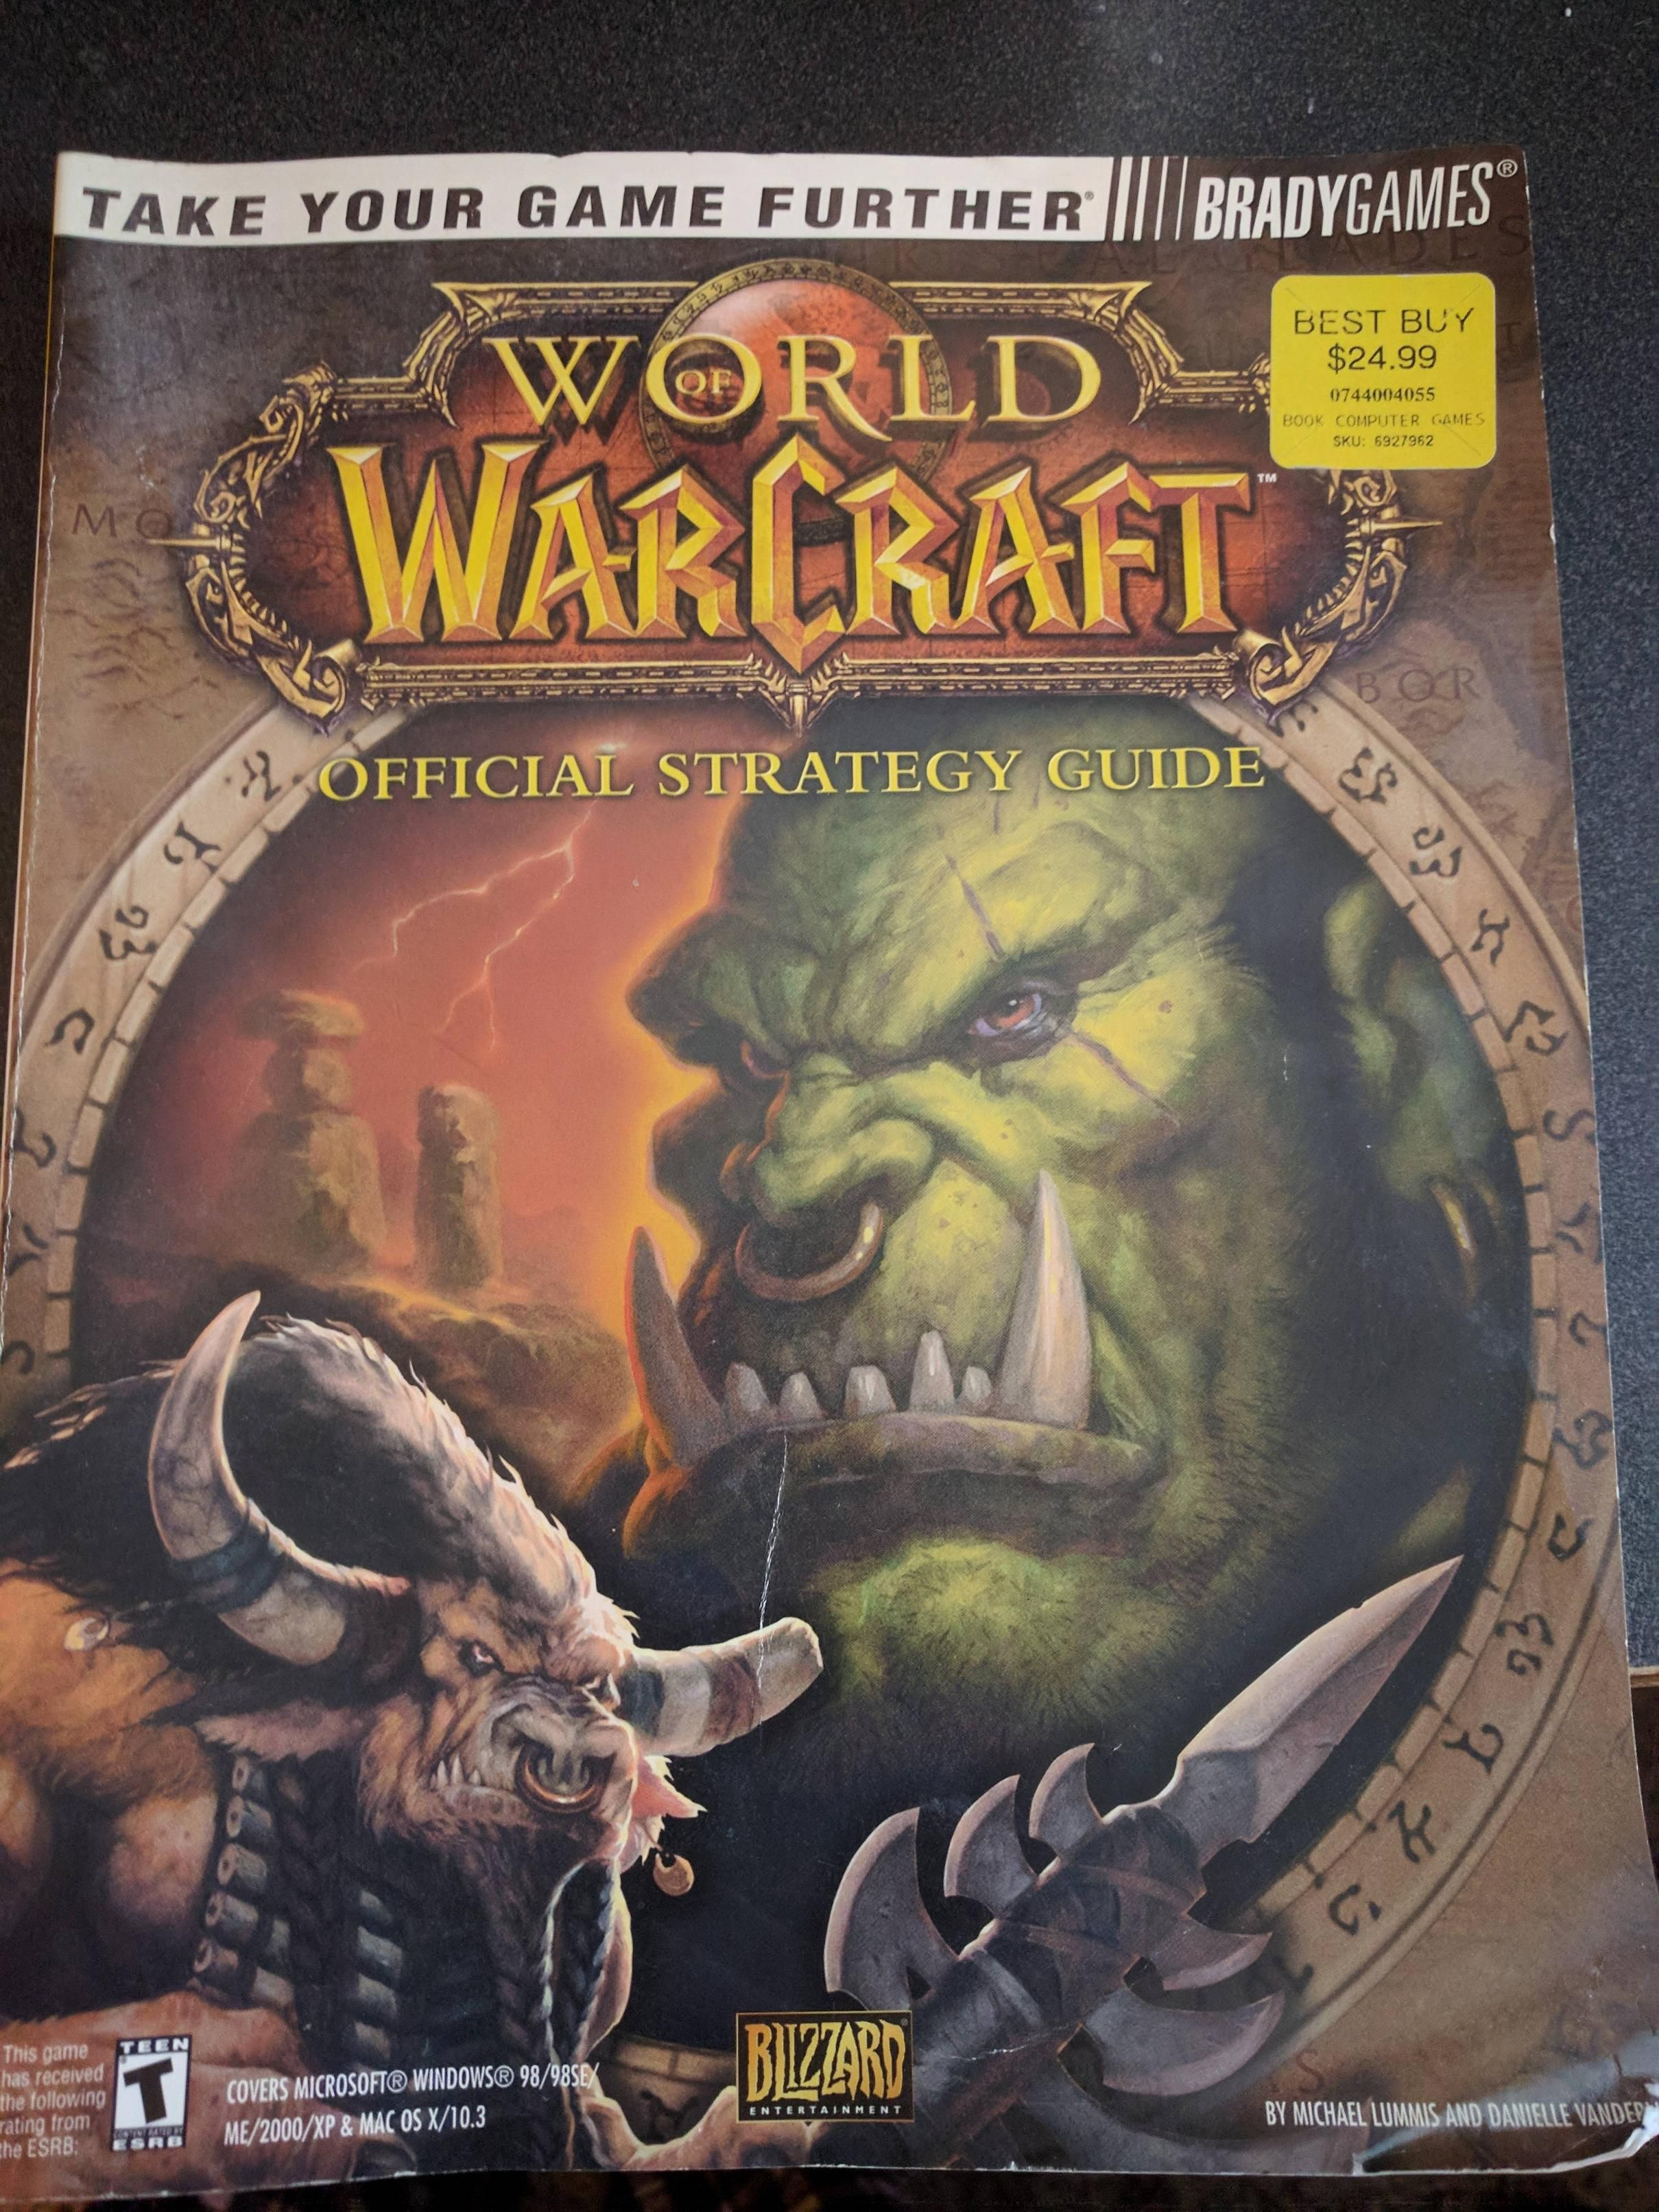 While Doing Some Fall Cleaning Last Week Havent Seen It Since TBC Came Out Worldofwarcraft Blizzard Hearthstone Wow Warcraft BlizzardCS Gaming